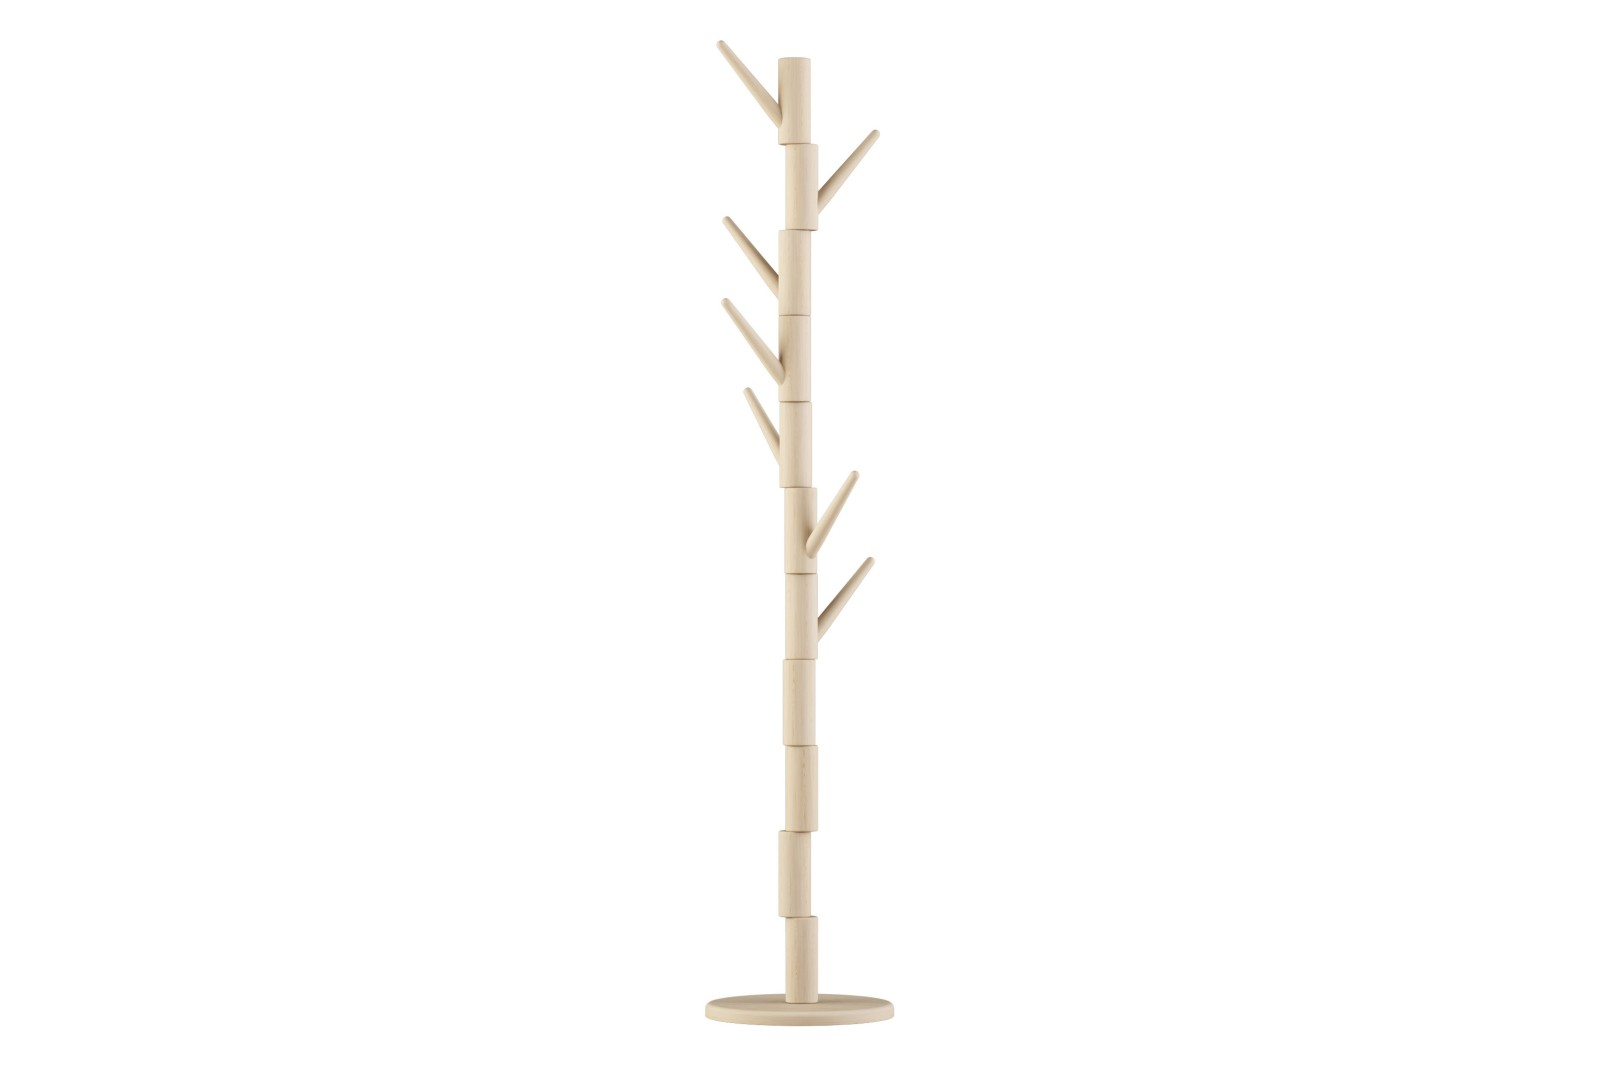 Klods Hans Coatrack Wooden Foot Solid Birch, Beech